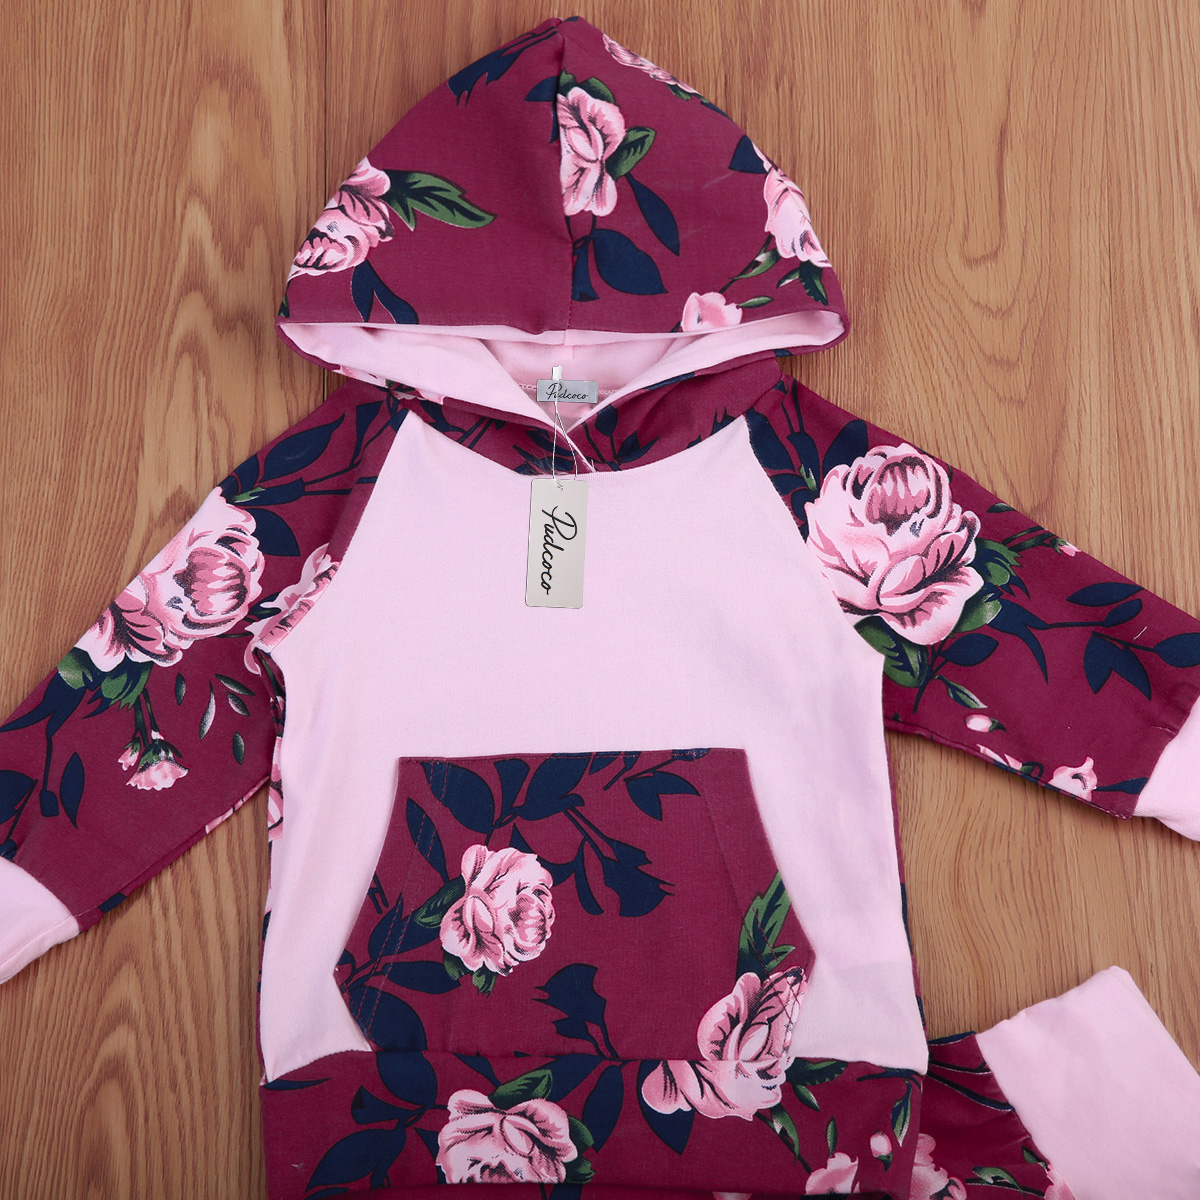 2Pcs Flower Baby Clothing Newborn Baby Girl Floral Hooded Sweatshirt Tops Pants Baby Girl Home Outfit Clothes Set 0-12M